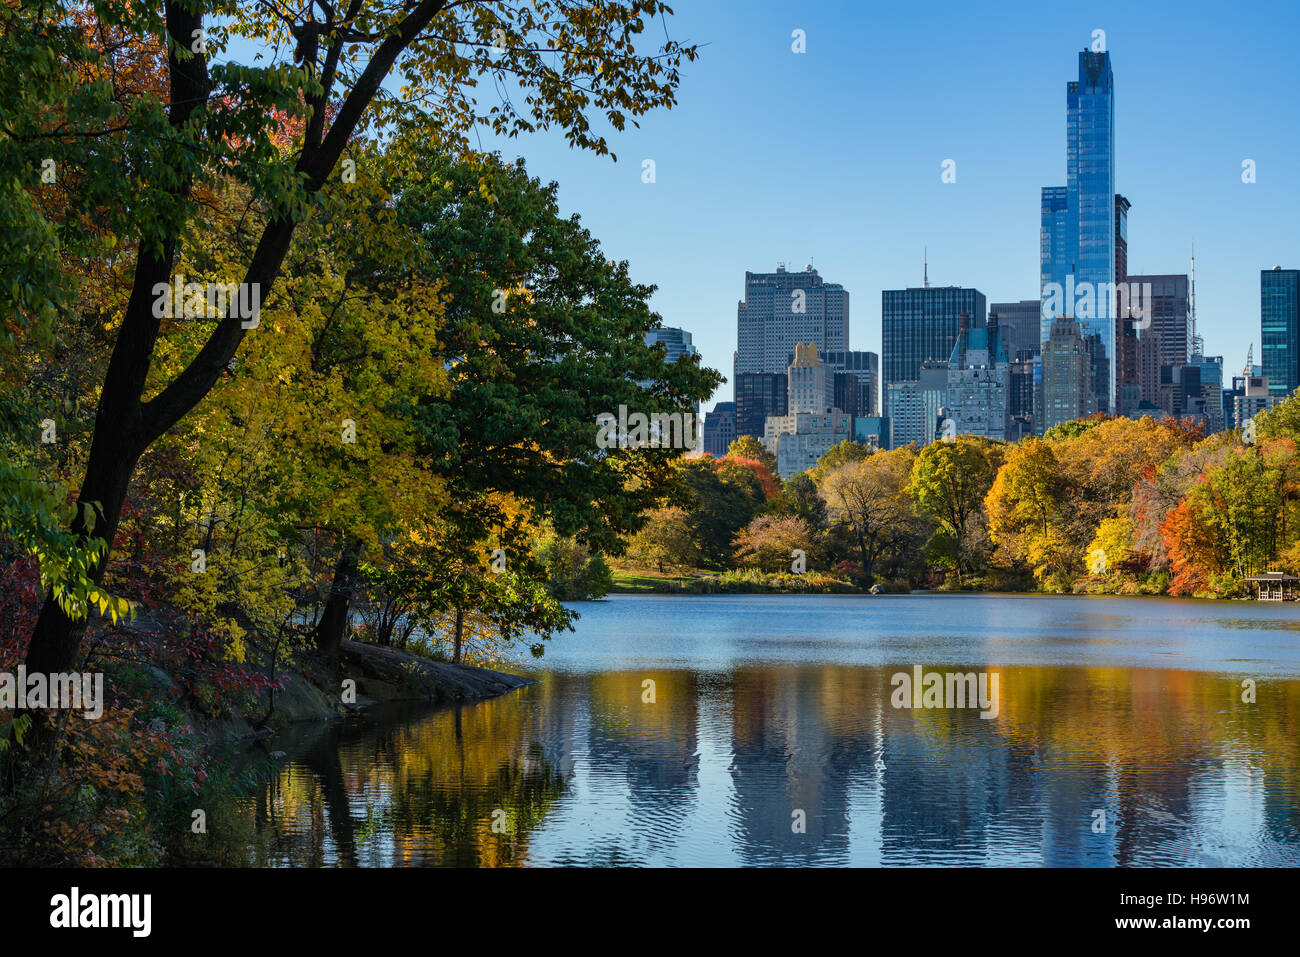 Herbst im Central Park in The Lake mit Midtown Wolkenkratzer. Stadtbild Sonnenaufgang, Manhattan, New York City Stockbild